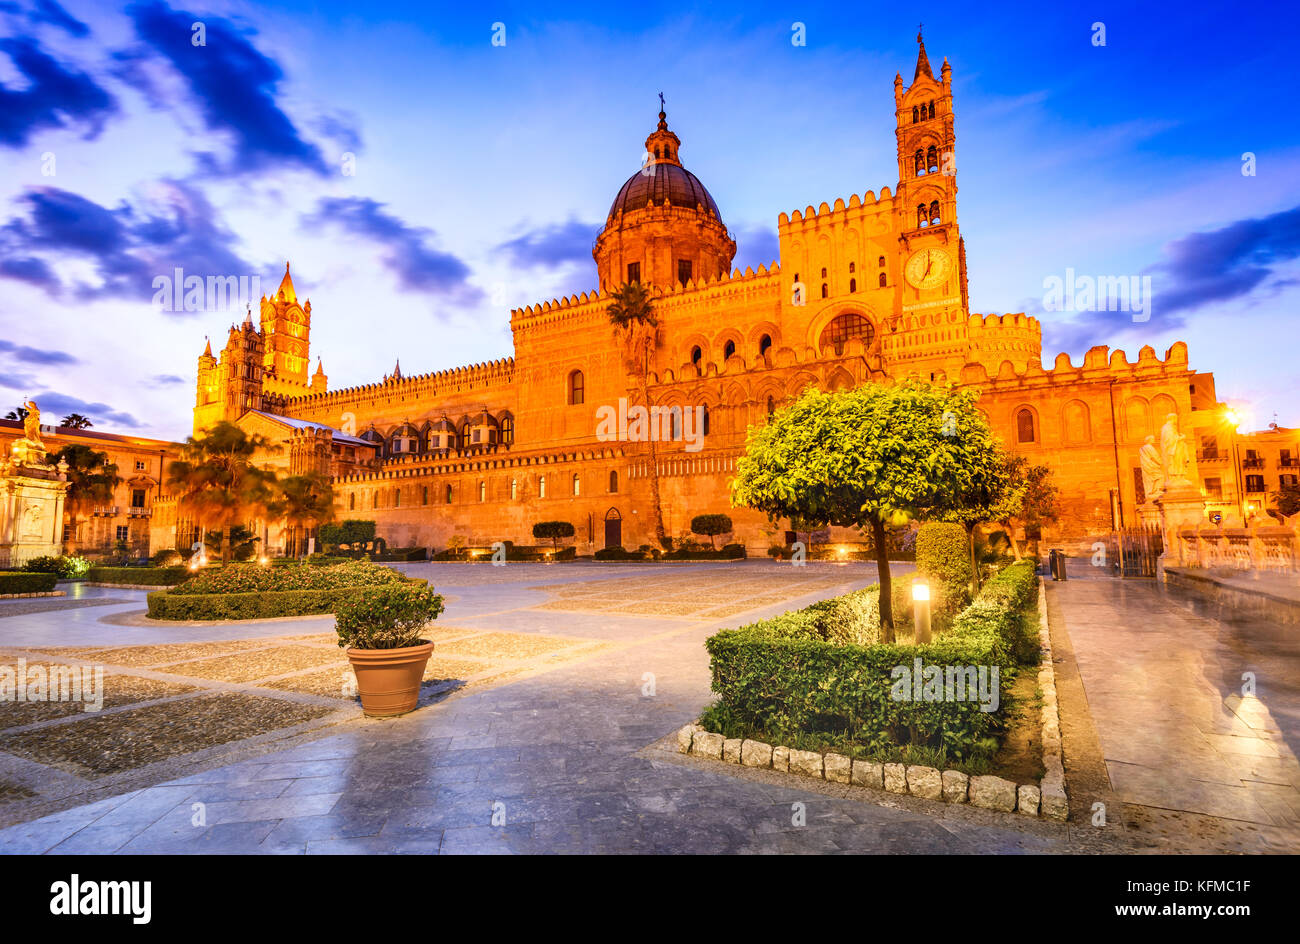 Palermo, Sicily. Twilight view Norman Cathedral of Assumption the Virgin Mary, medieval Italy. - Stock Image